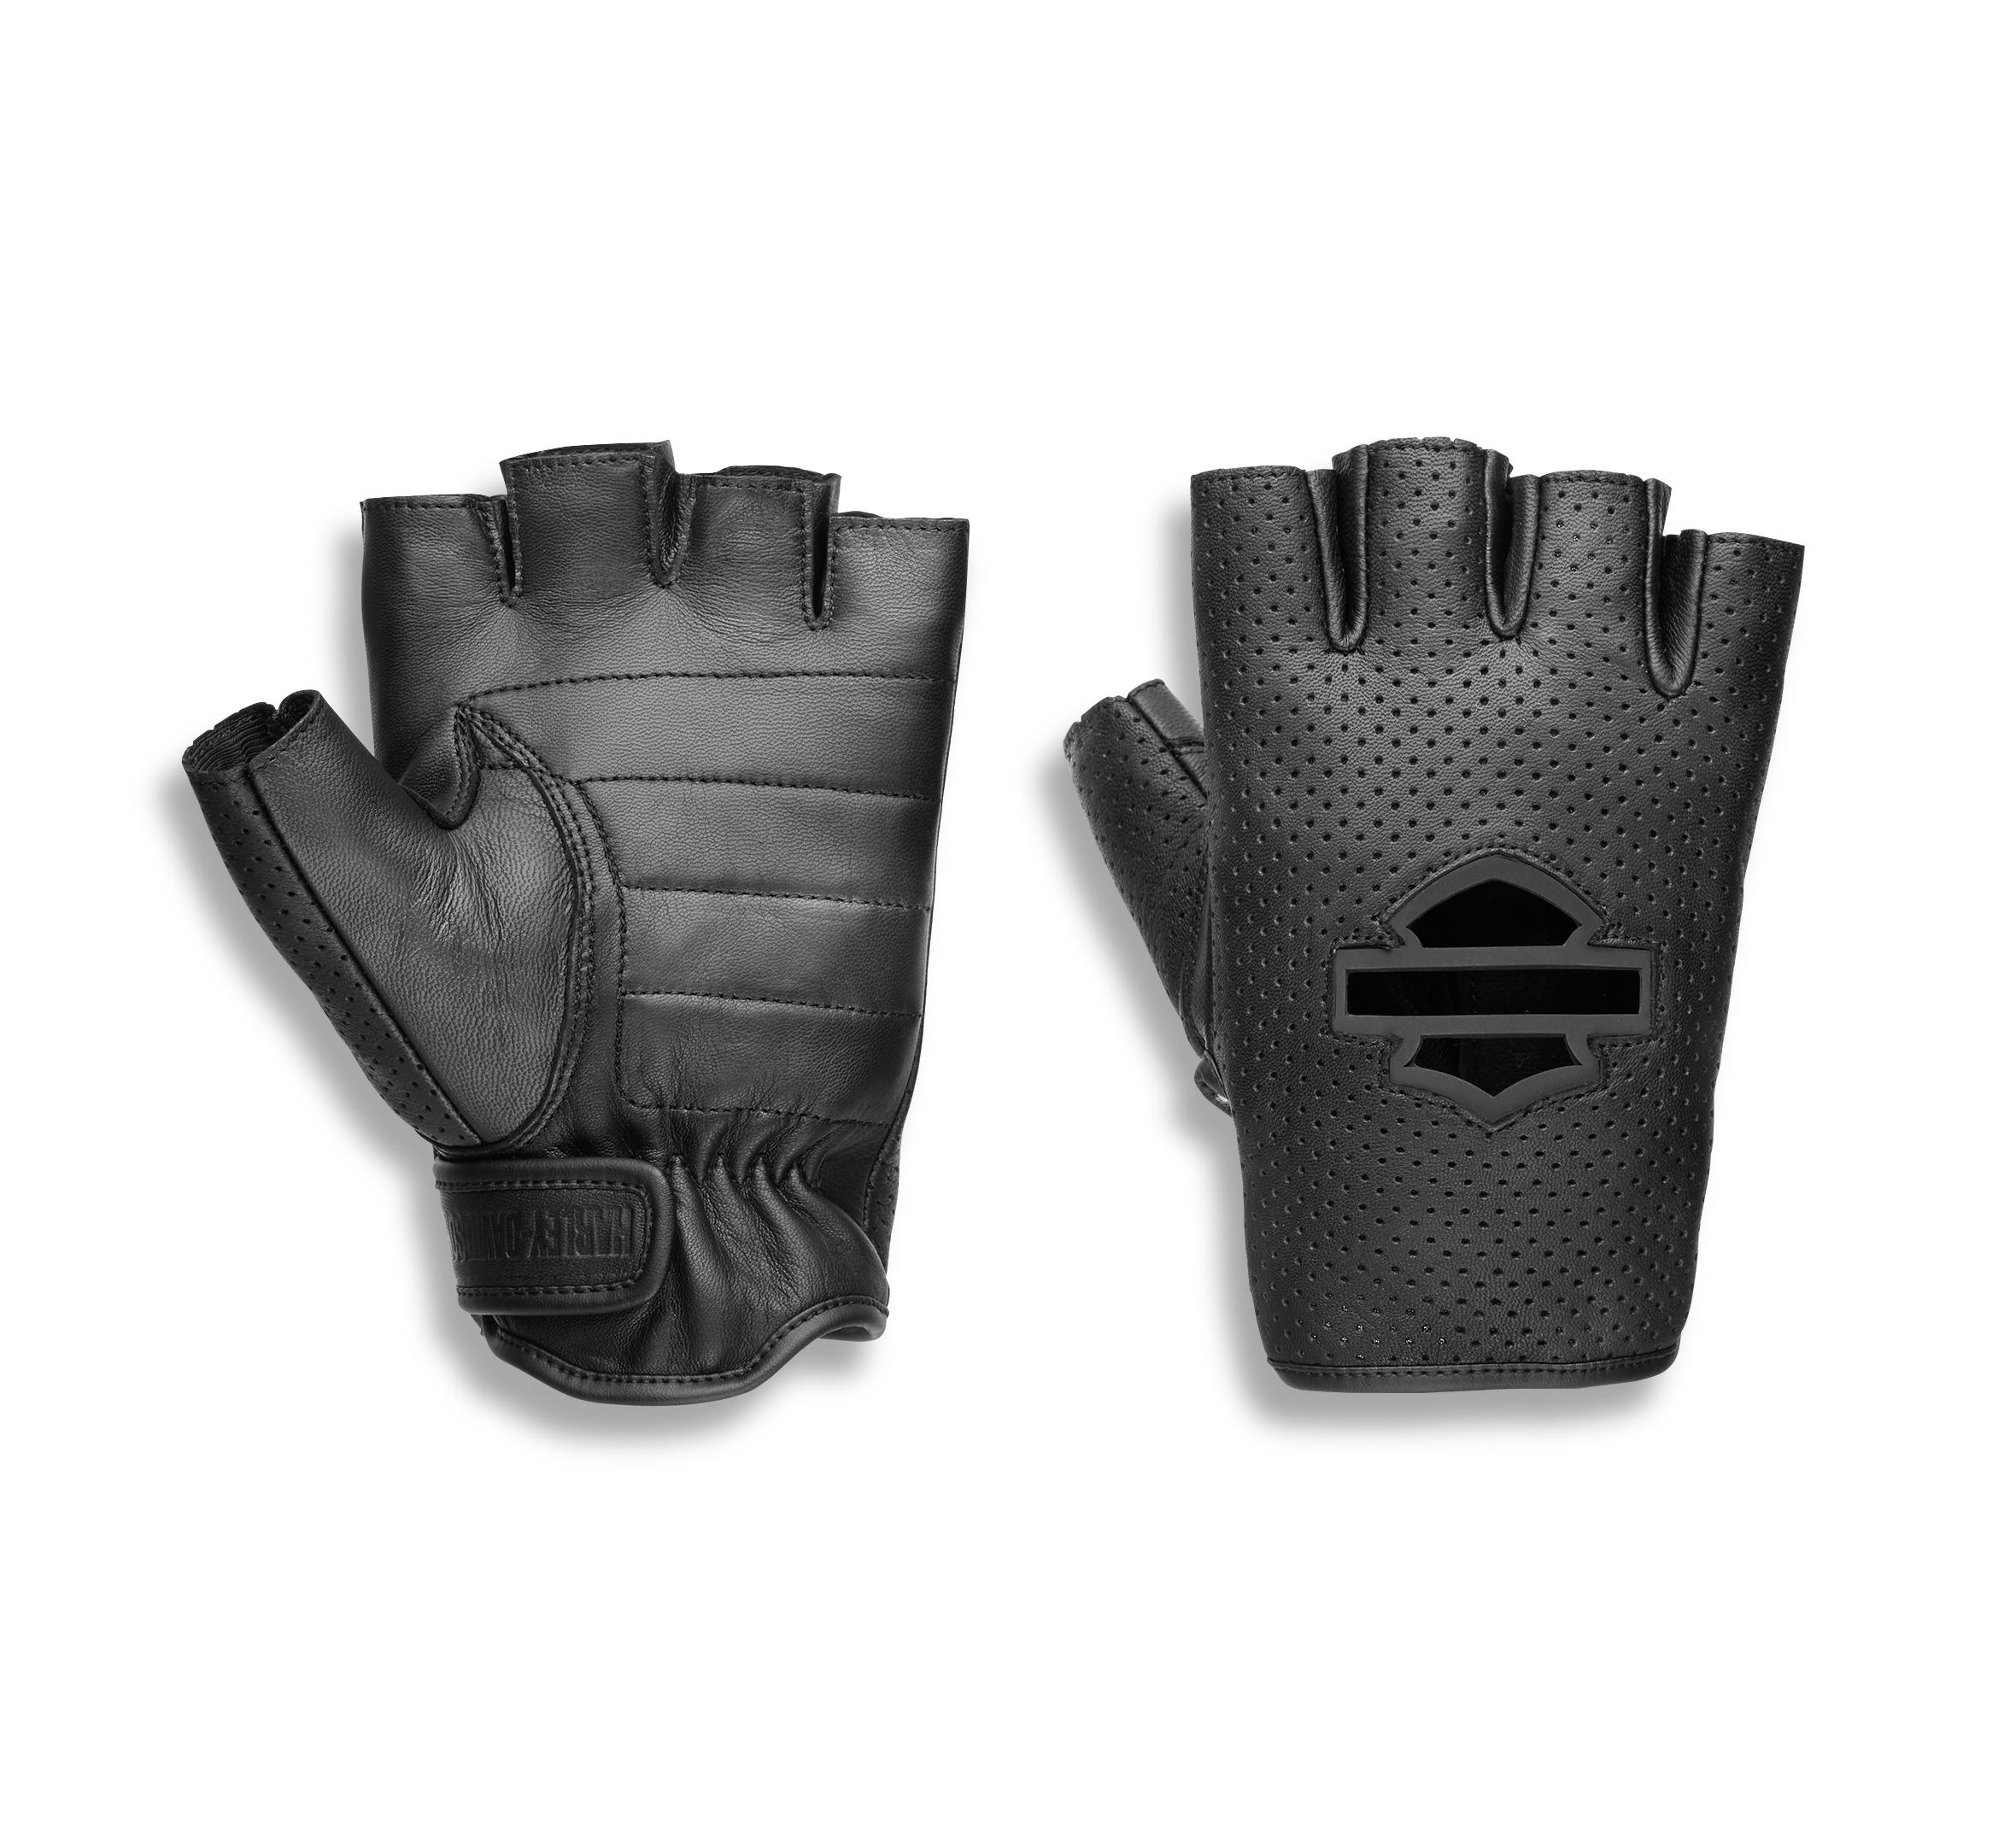 97118-21vm guantes hombre smokeshow fingerless mixted